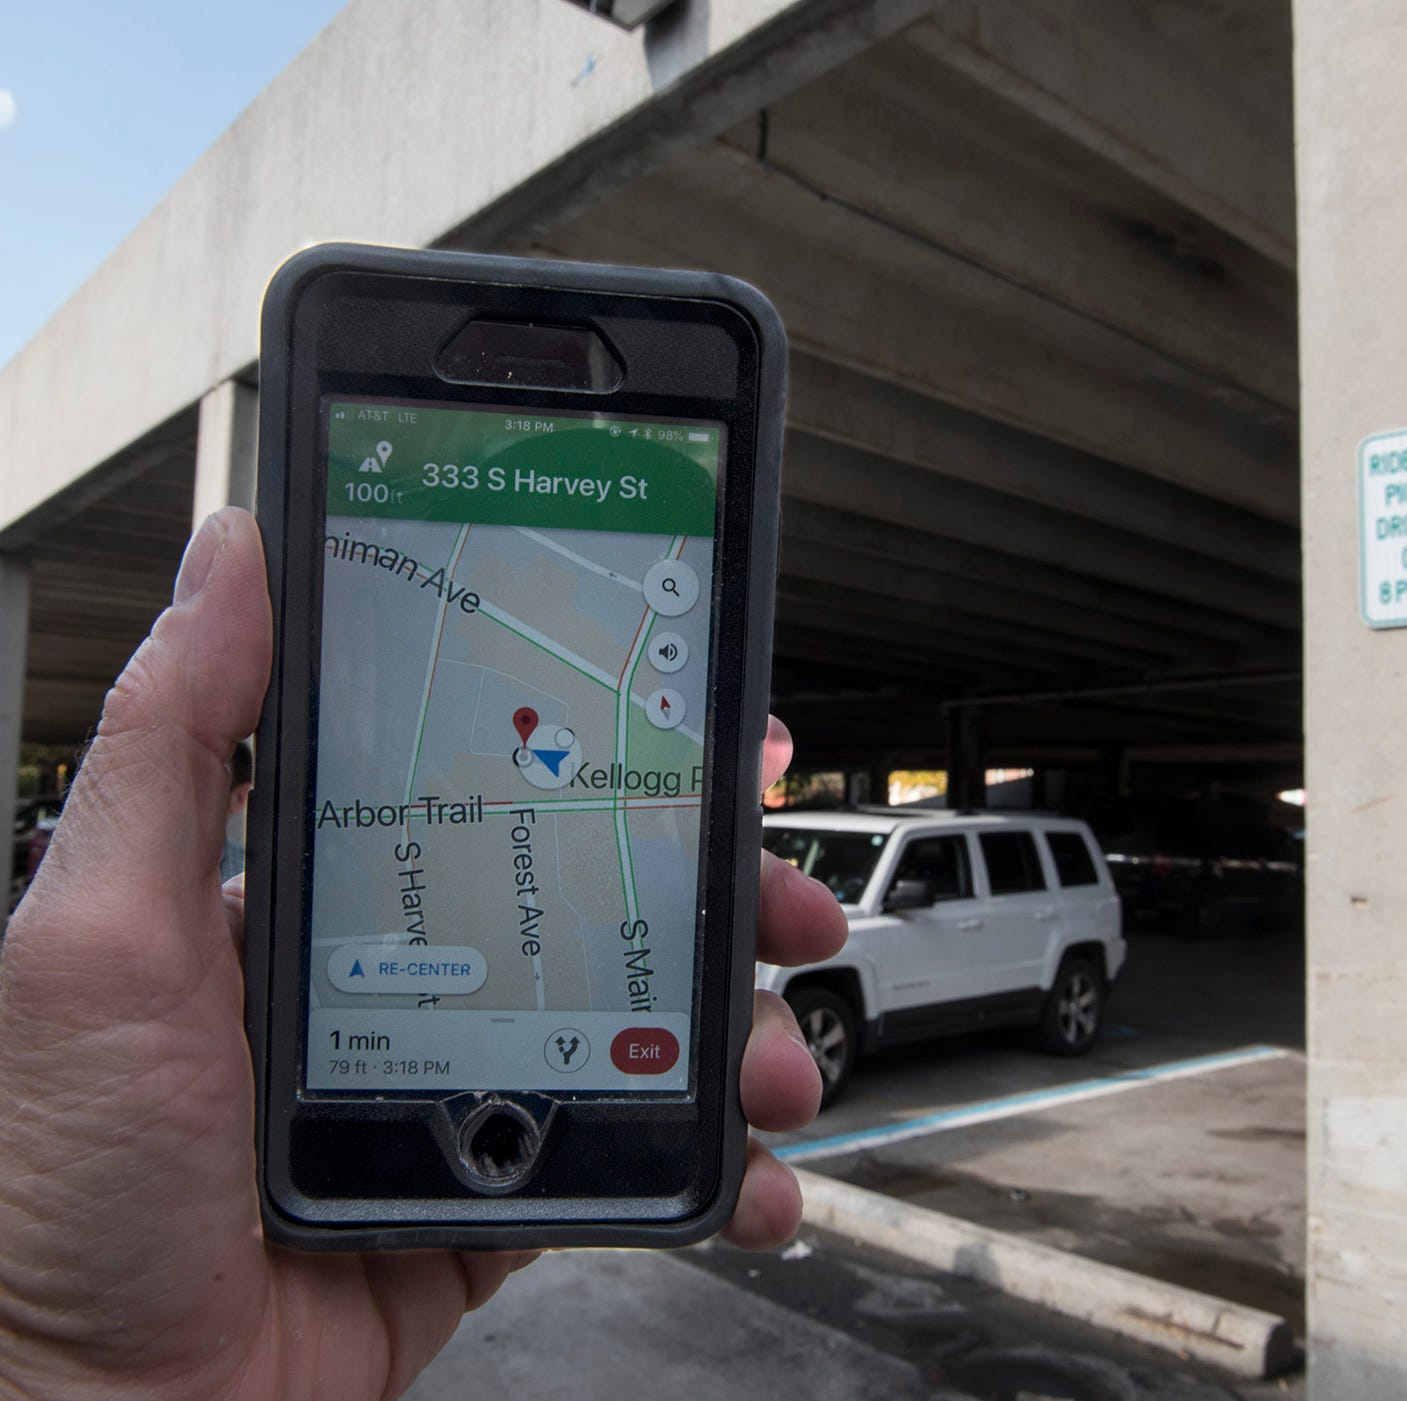 Uber, Lyft ride-hailing services create traffic, parking issues in downtowns